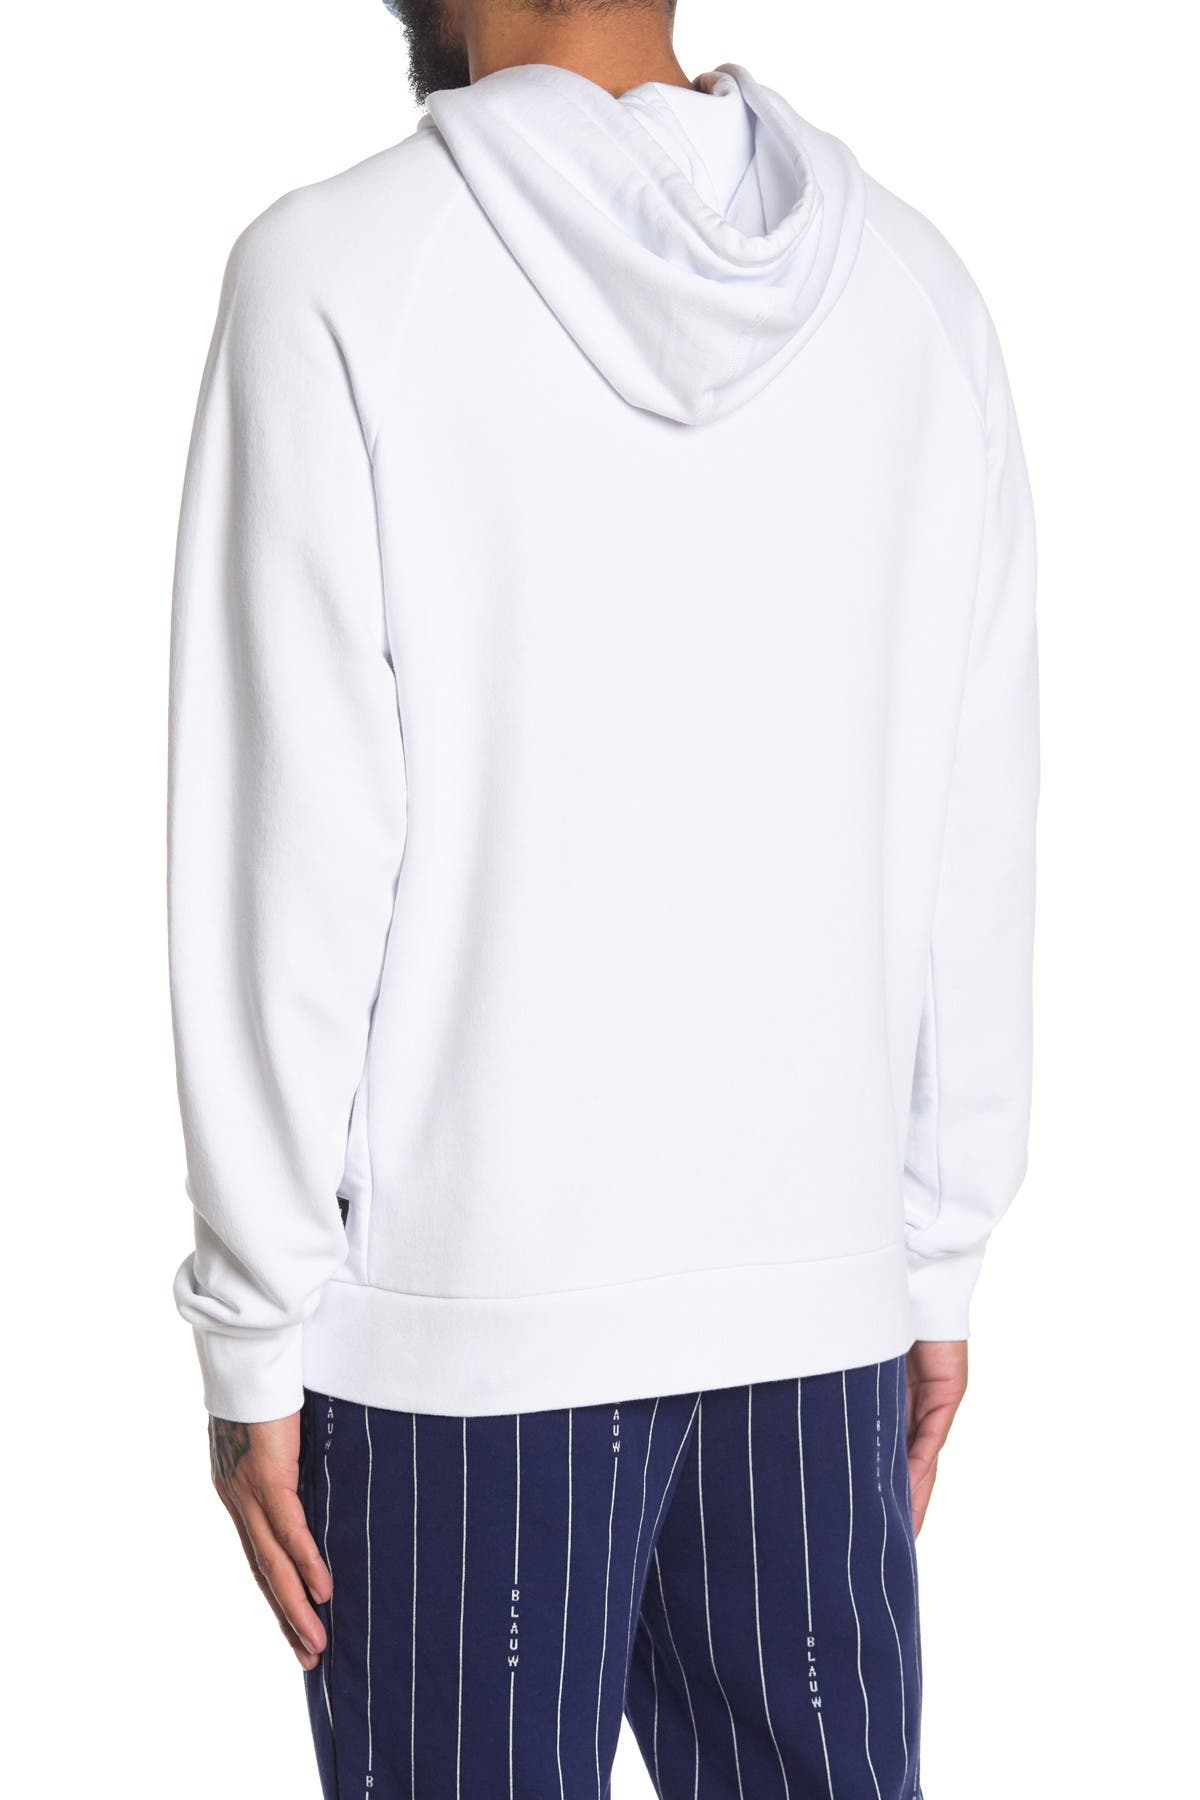 Image of Scotch & Soda Artwork Pullover Hoodie